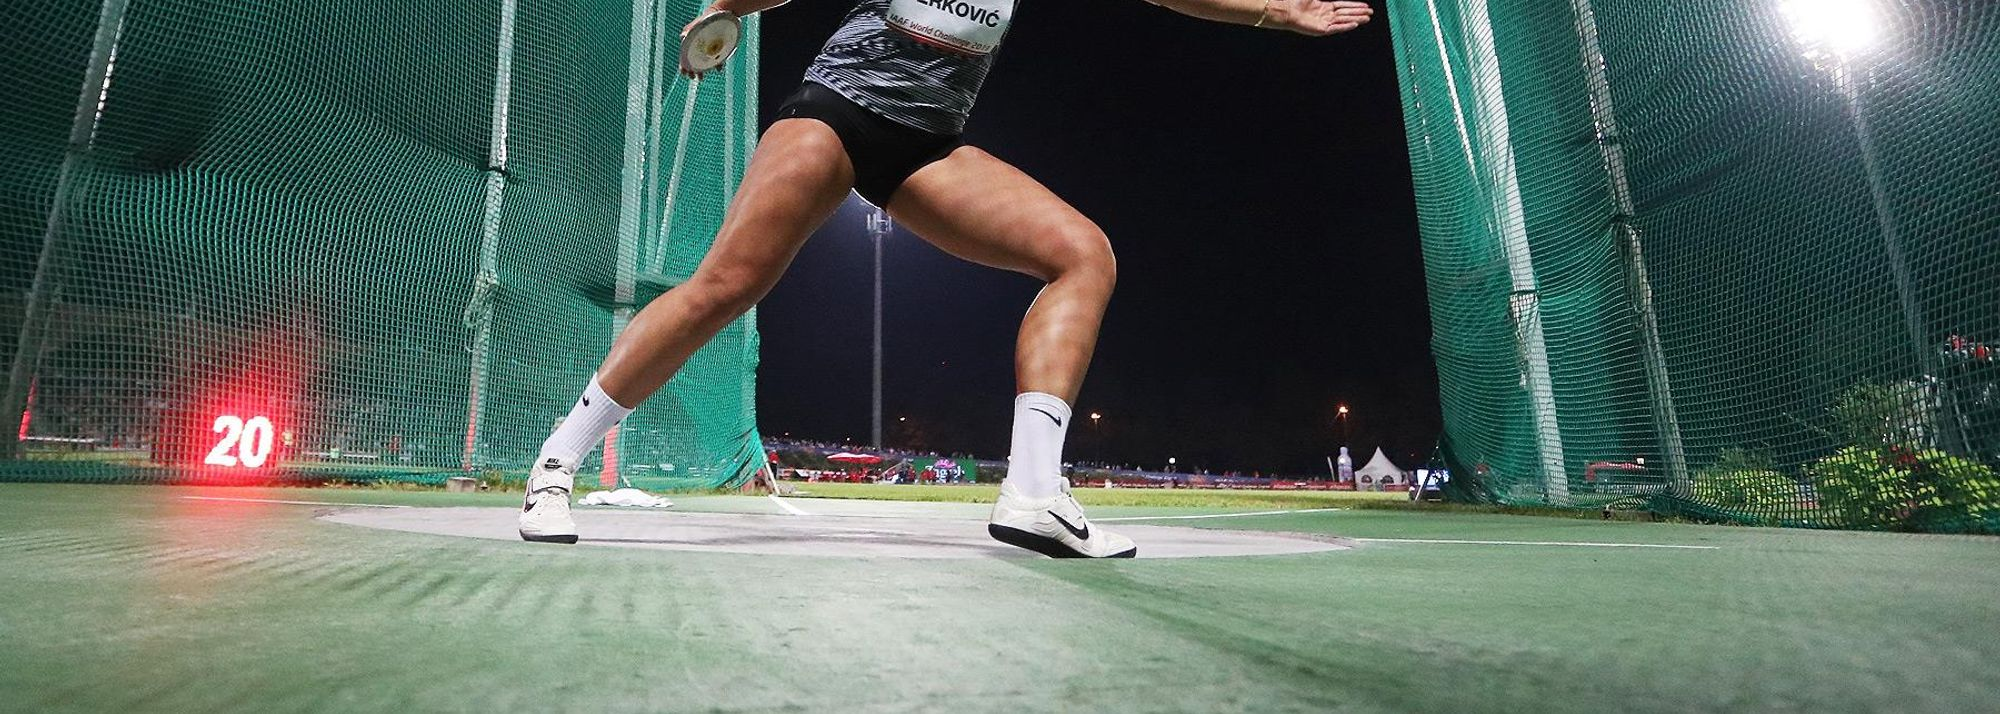 Sandra Perkovic may not have been her usual dominant self so far this year, but the home crowd at the Hanzekovic Memorial in Zagreb – the final IAAF World Challenge meeting of 2019 – cheered the world and Olympic discus champion on to a 67.78m victory on Tuesday (3).